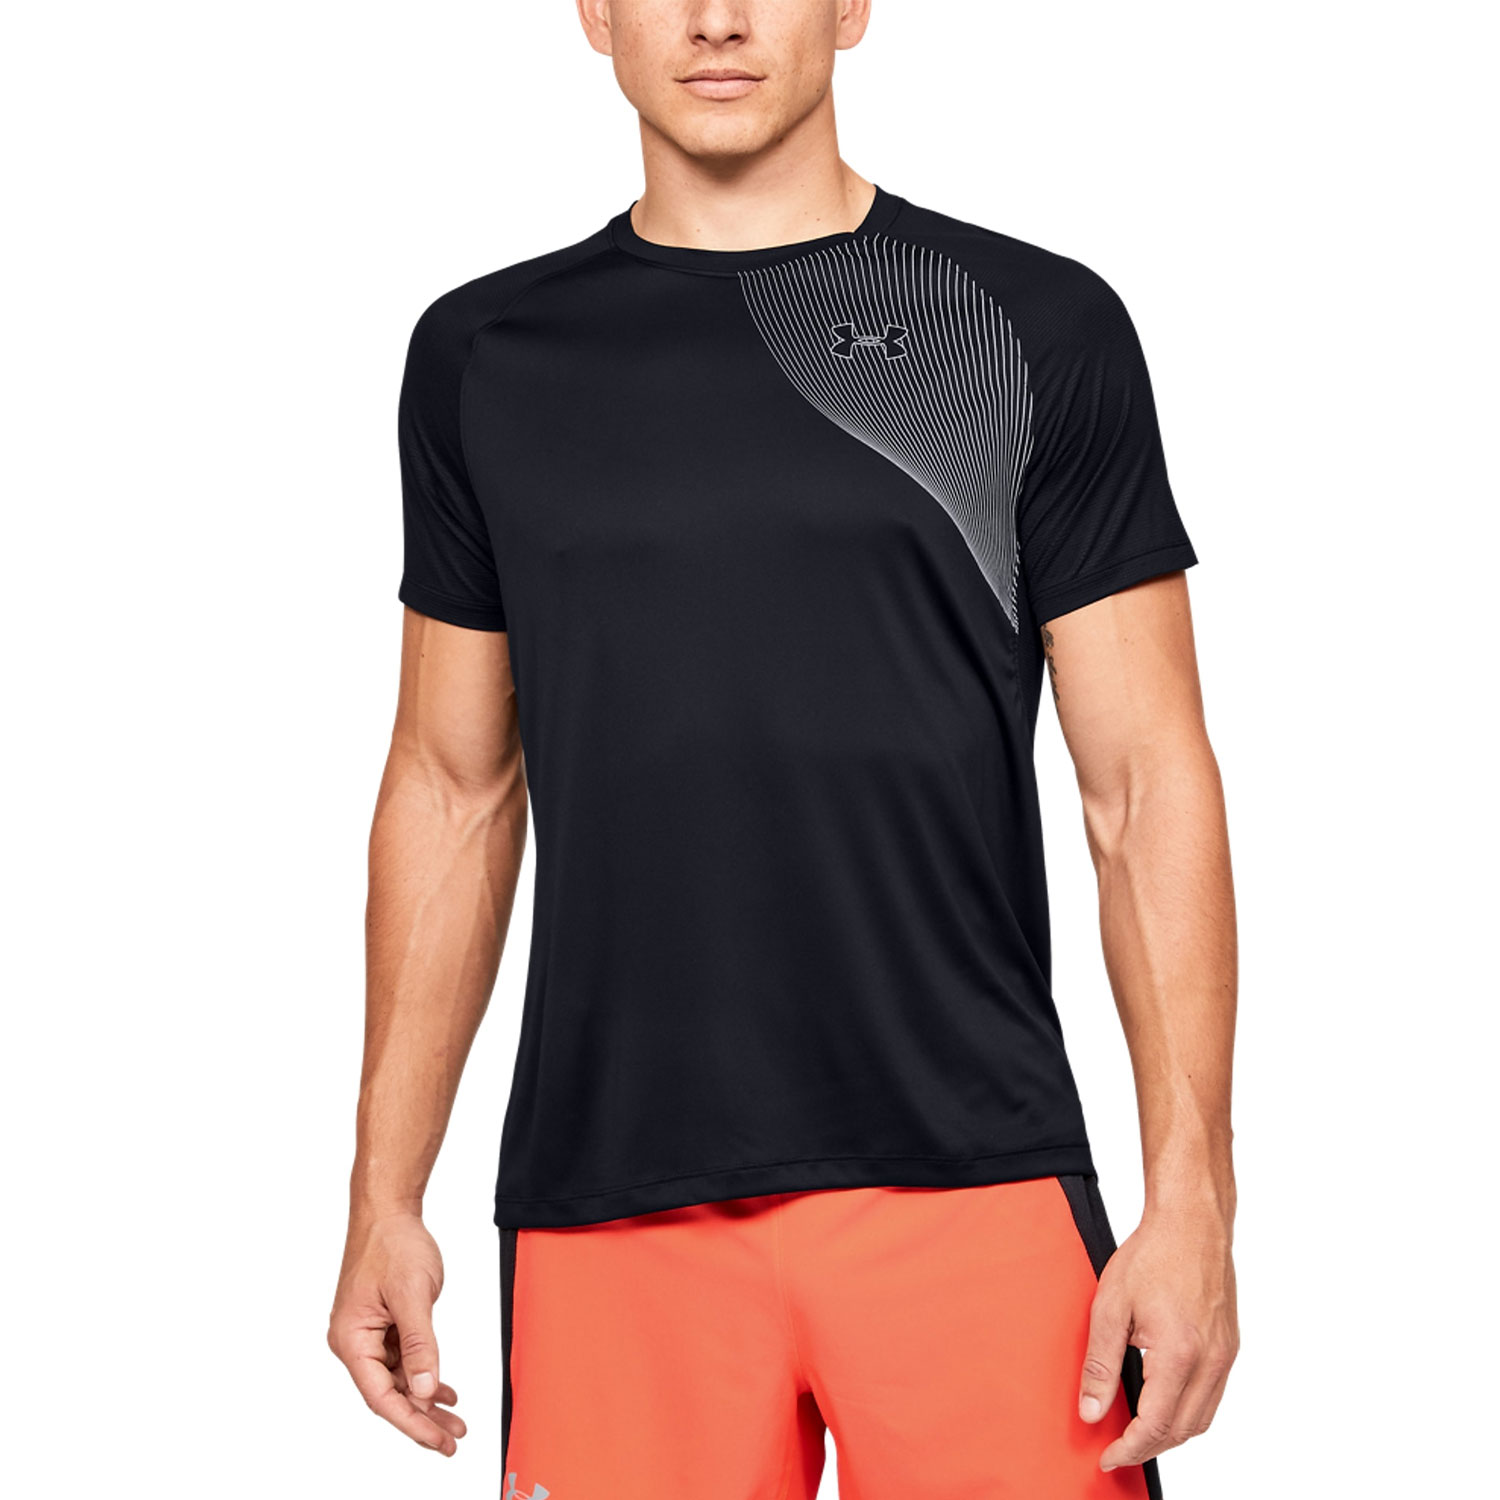 Under Armour Qualifier Iso-ChilL Logo T-shirt - Black